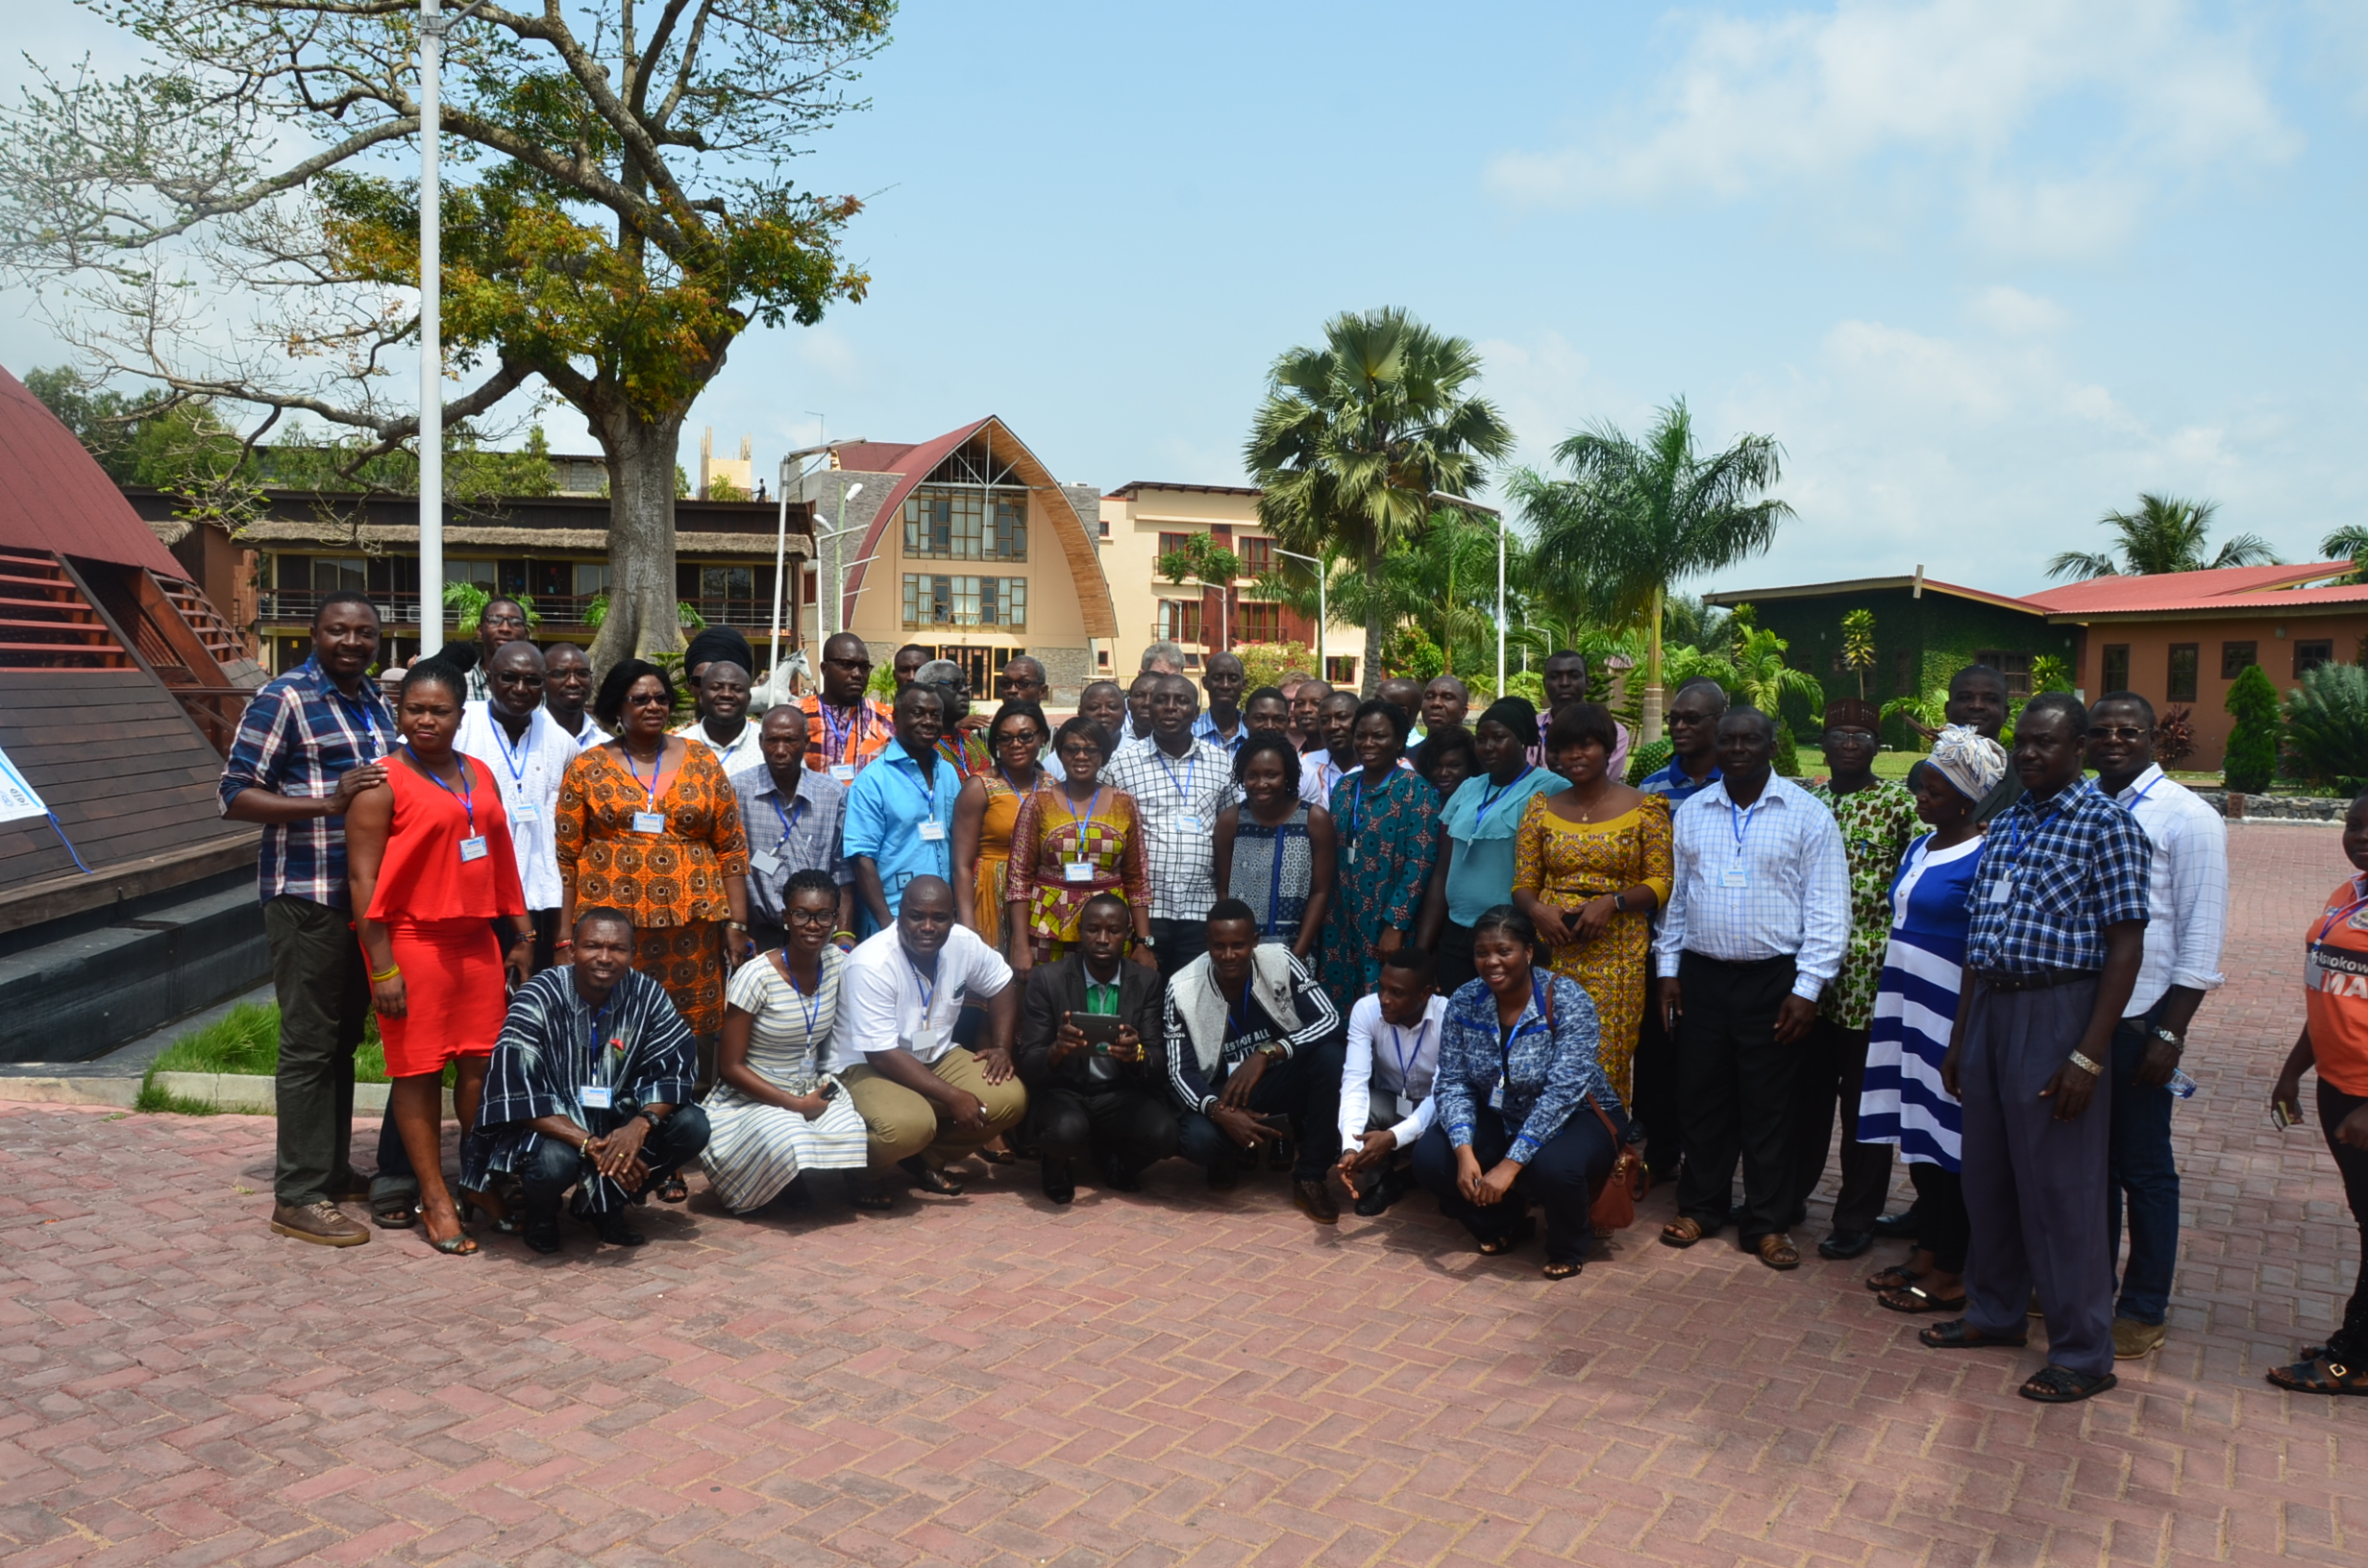 Participants of the Mole Conference